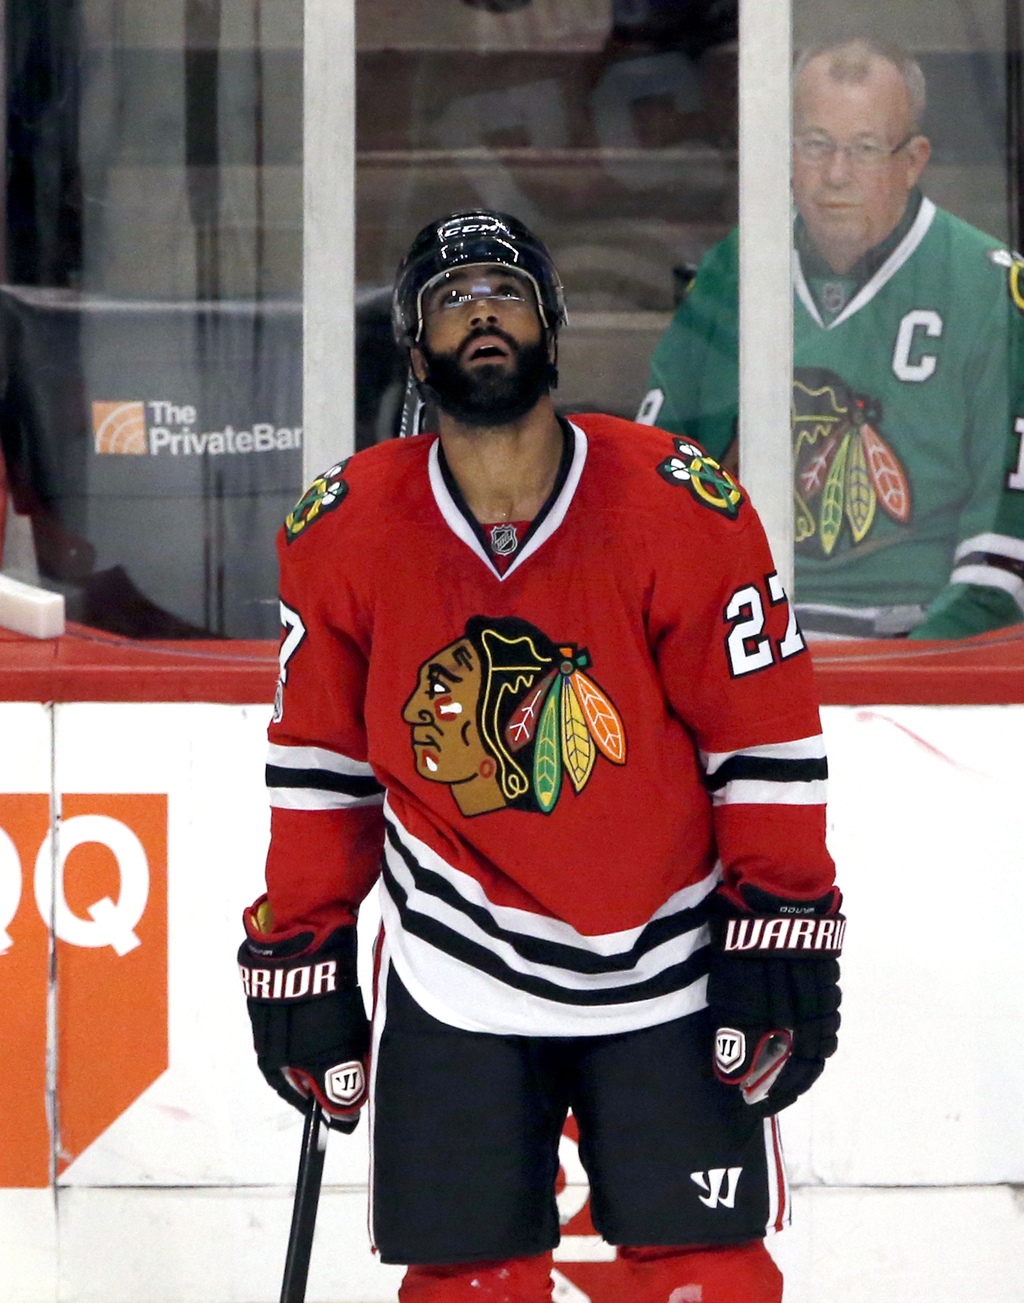 Chicago Blackhawks defenseman Johnny Oduya looks at the scoreboard after Anaheim Ducks right wing Corey Perry scored a goal during the ...